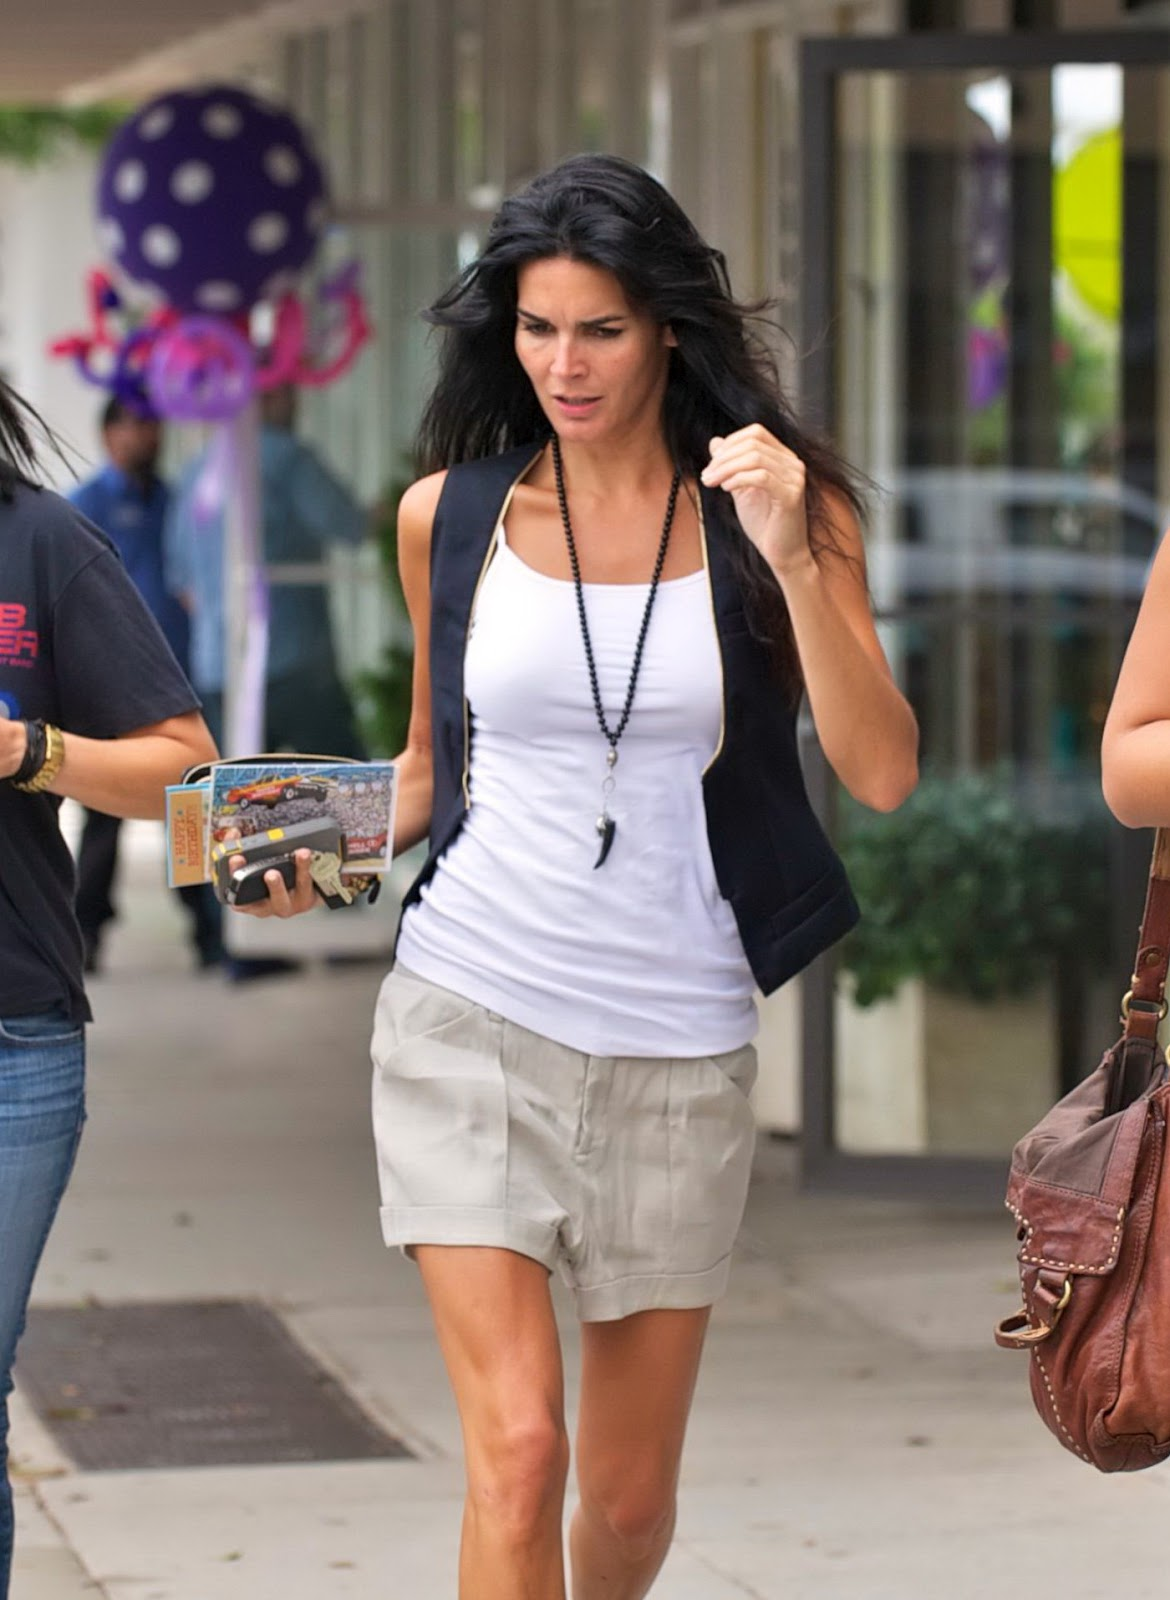 Angie Harmon - Candids in Santa Monica   Just FAB Celebs